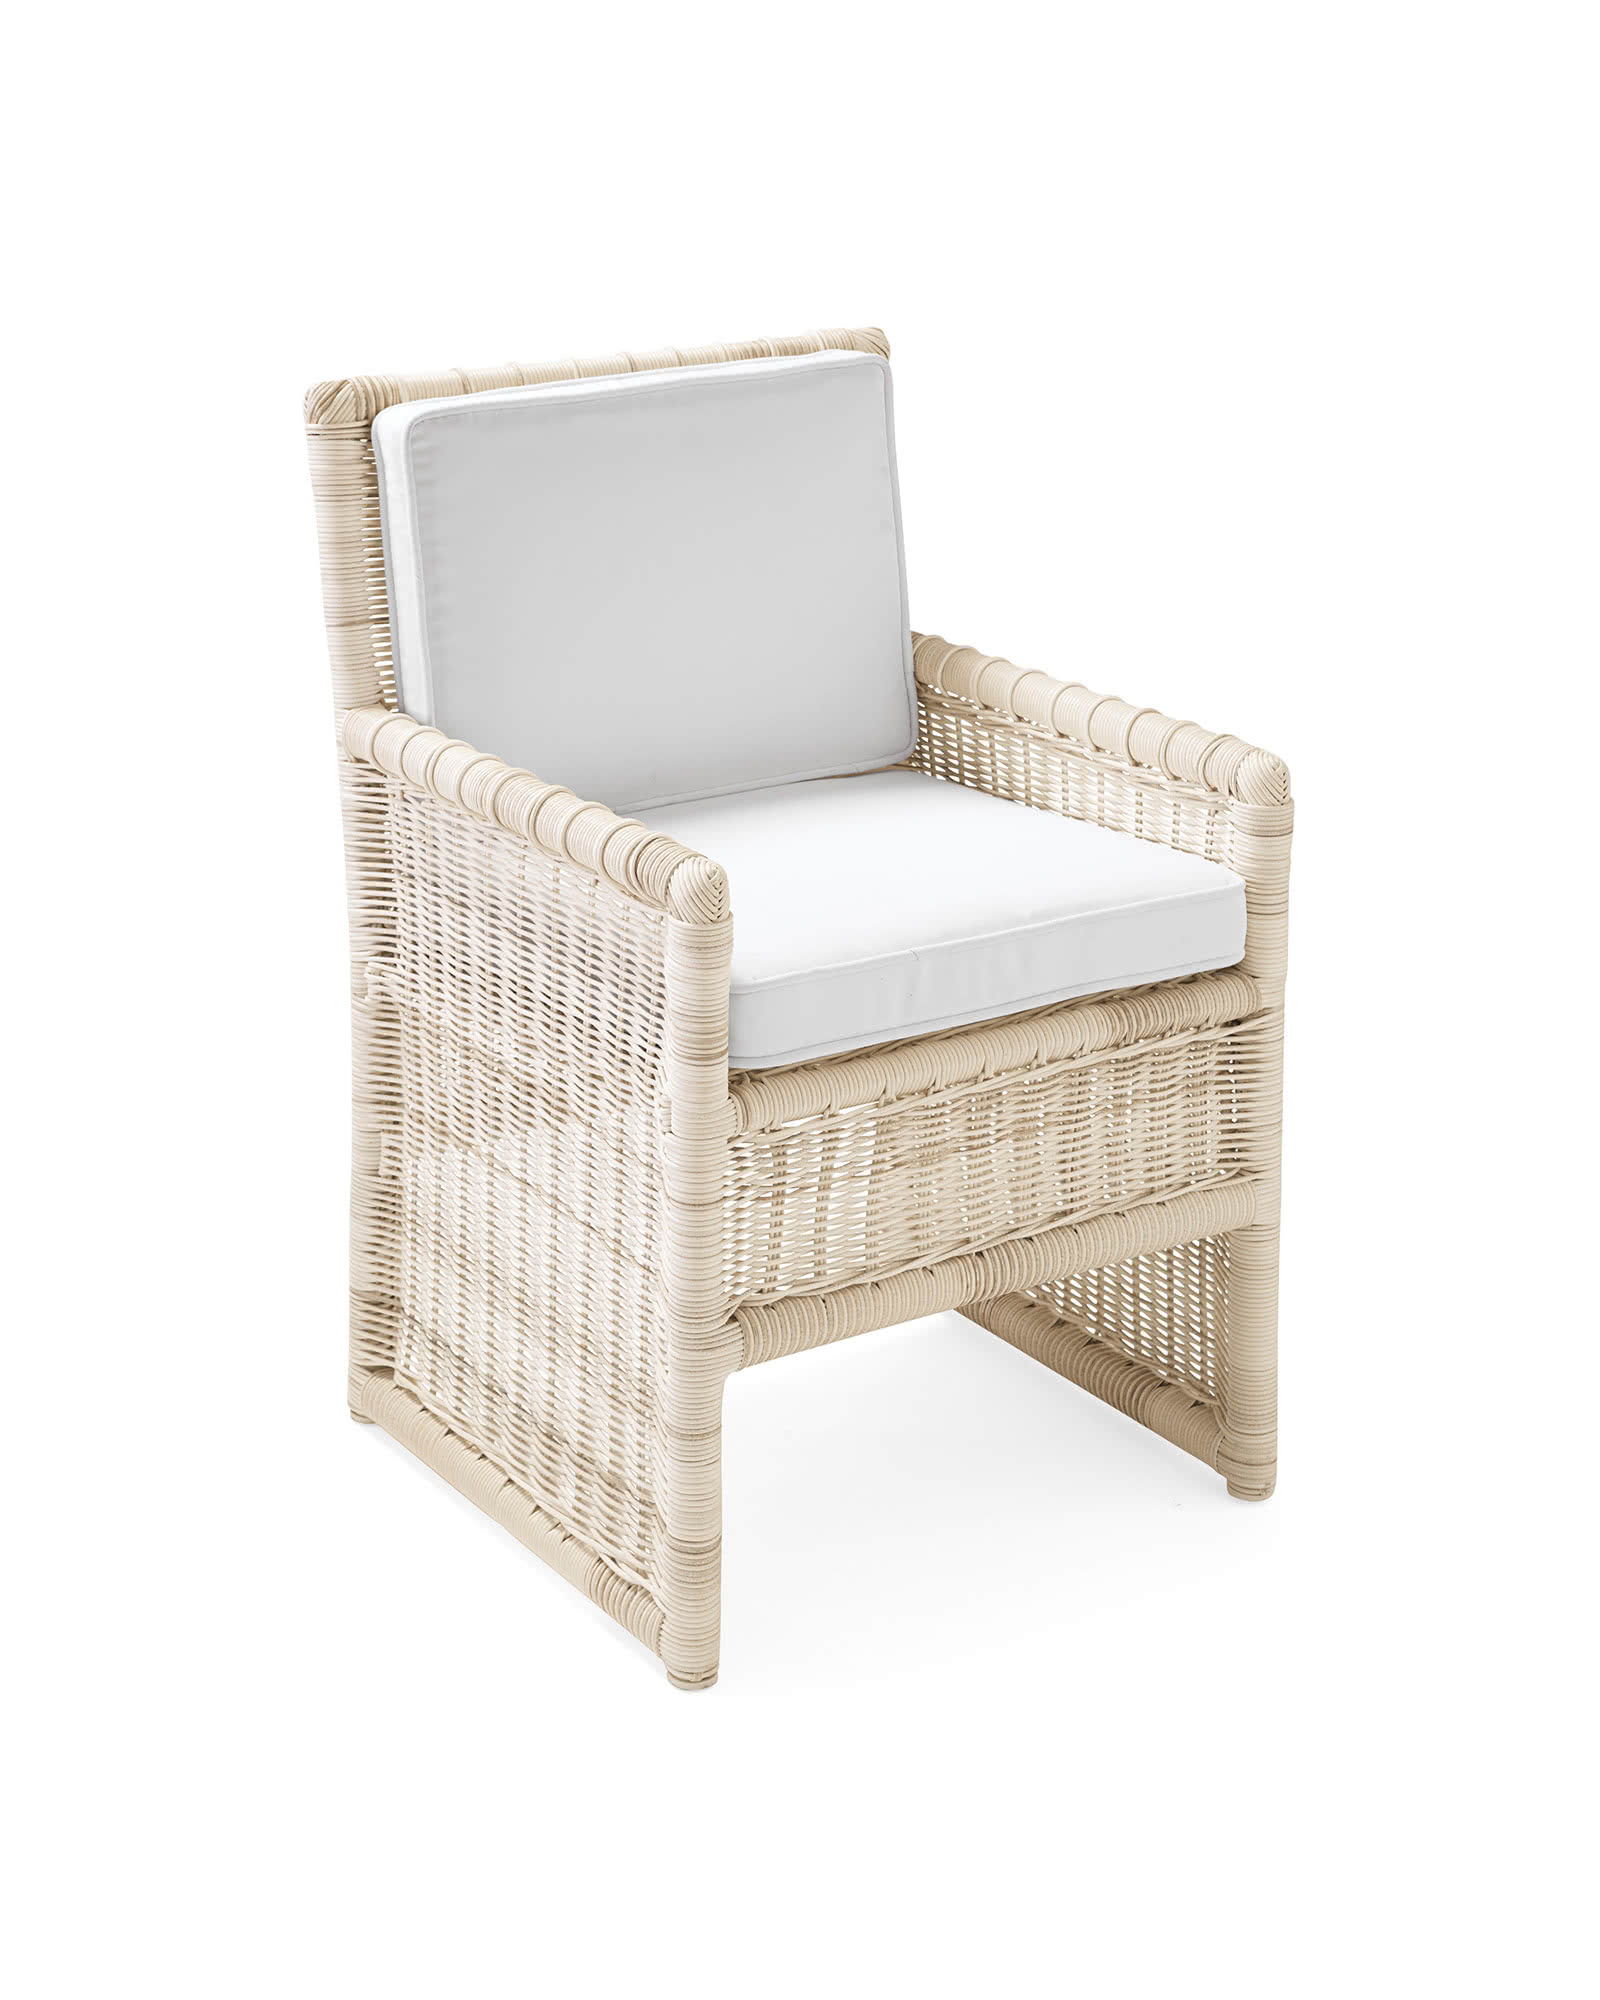 Pacifica Outdoor Dining Chair,